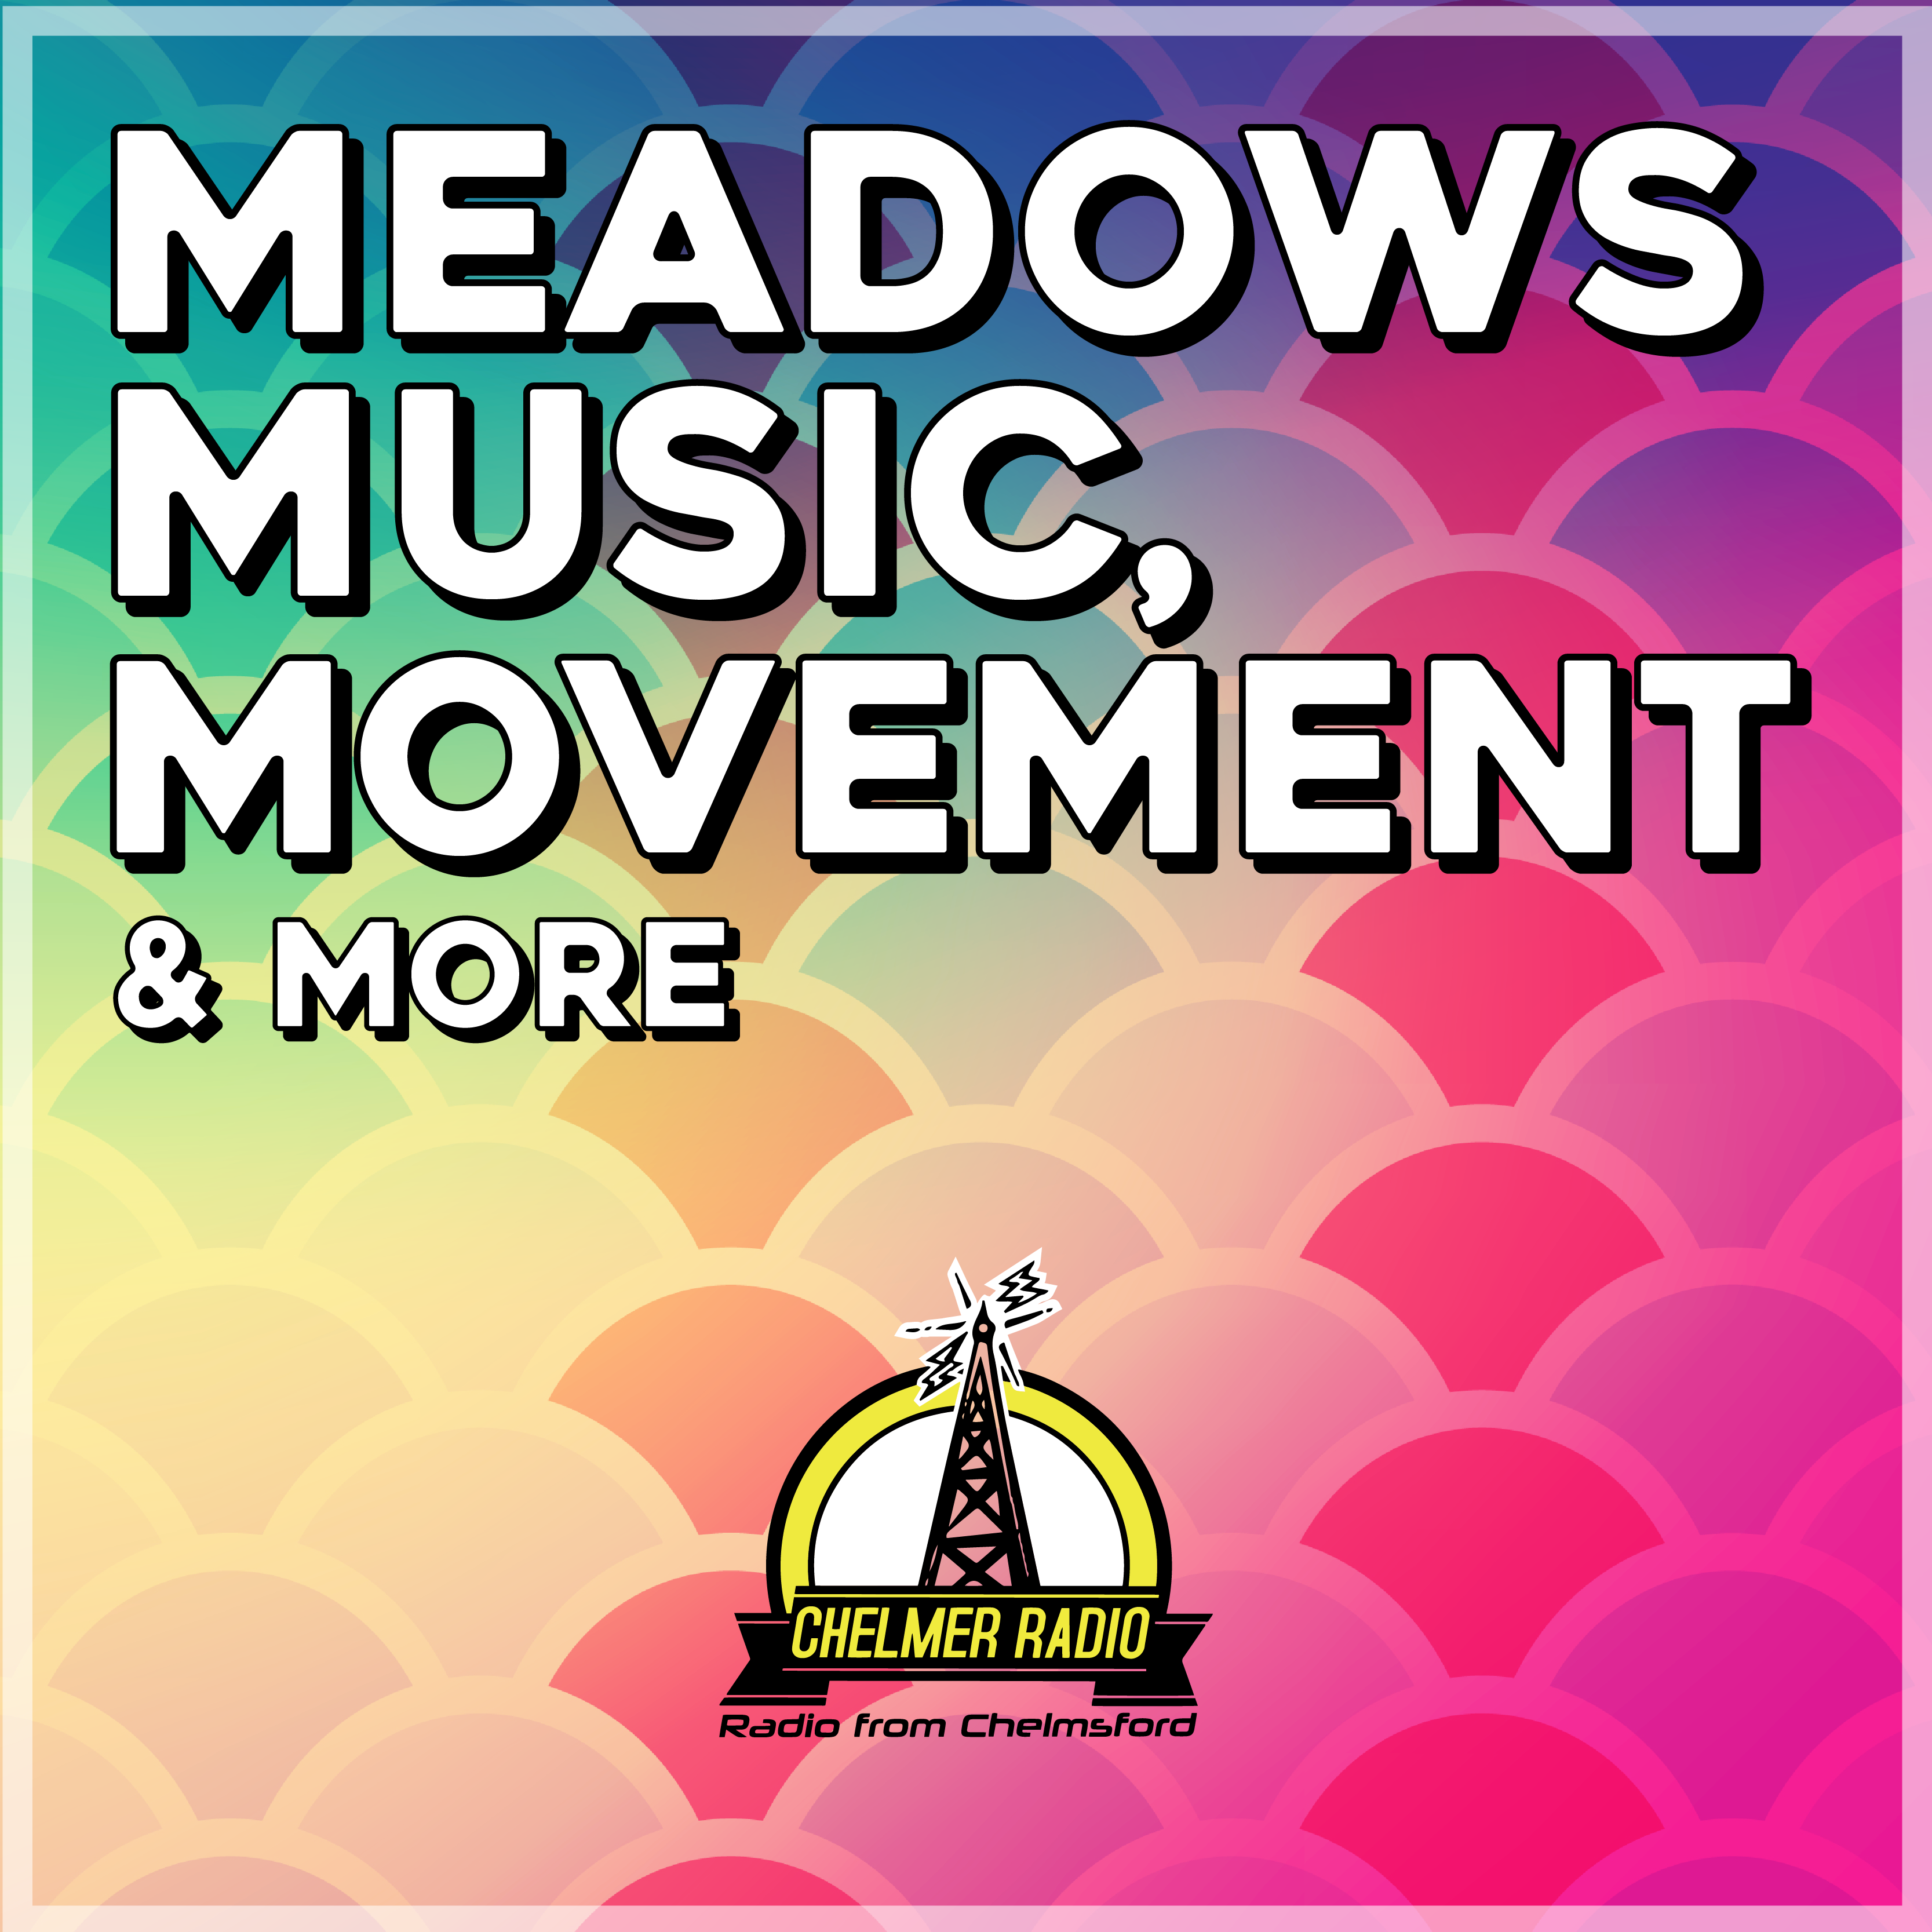 Meadows Music, Movement & More...